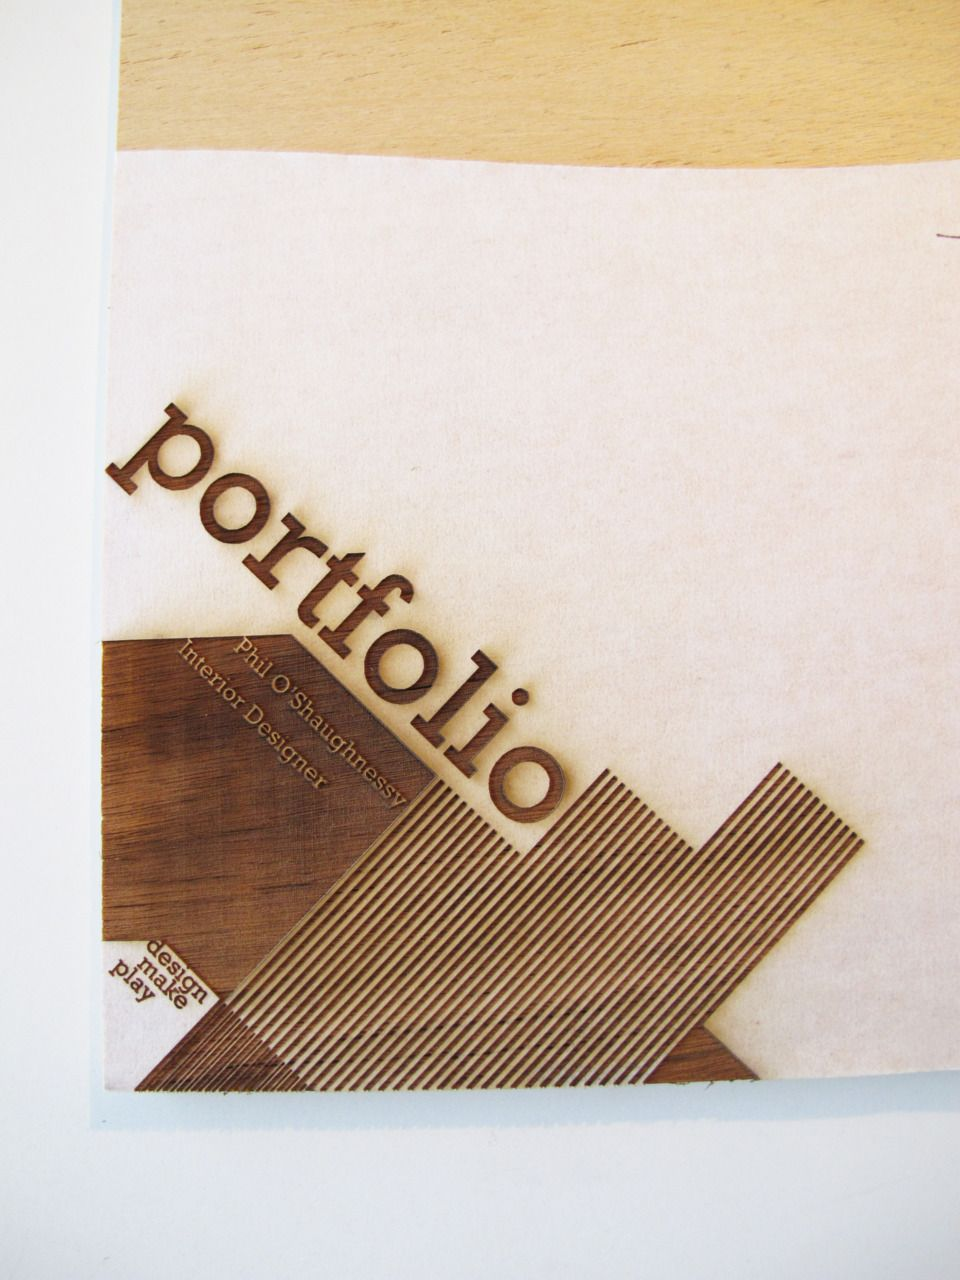 Brilliant Portfolio Cover We Burnt Into Plywood Protective Tape Prevents The Oils And Burn Marks From Portfolio Design Portfolio Cover Design Portfolio Covers